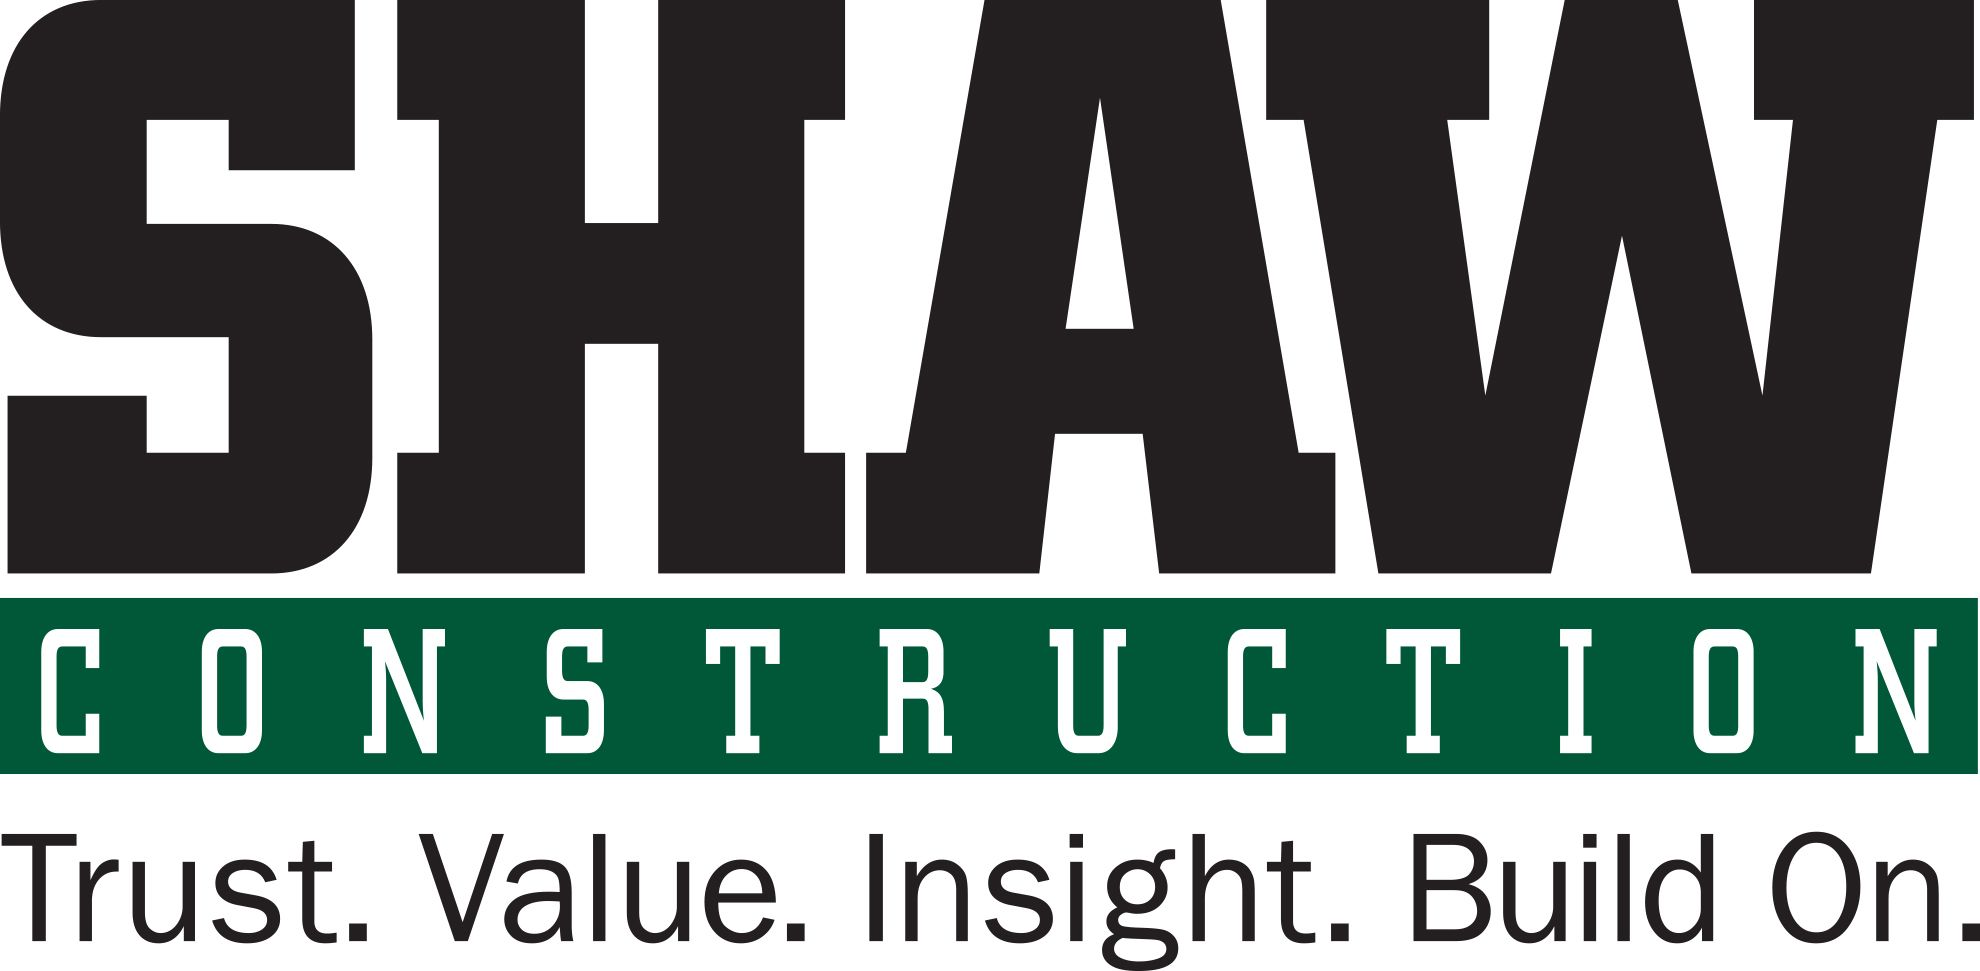 Shaw Construction logo - Links to website